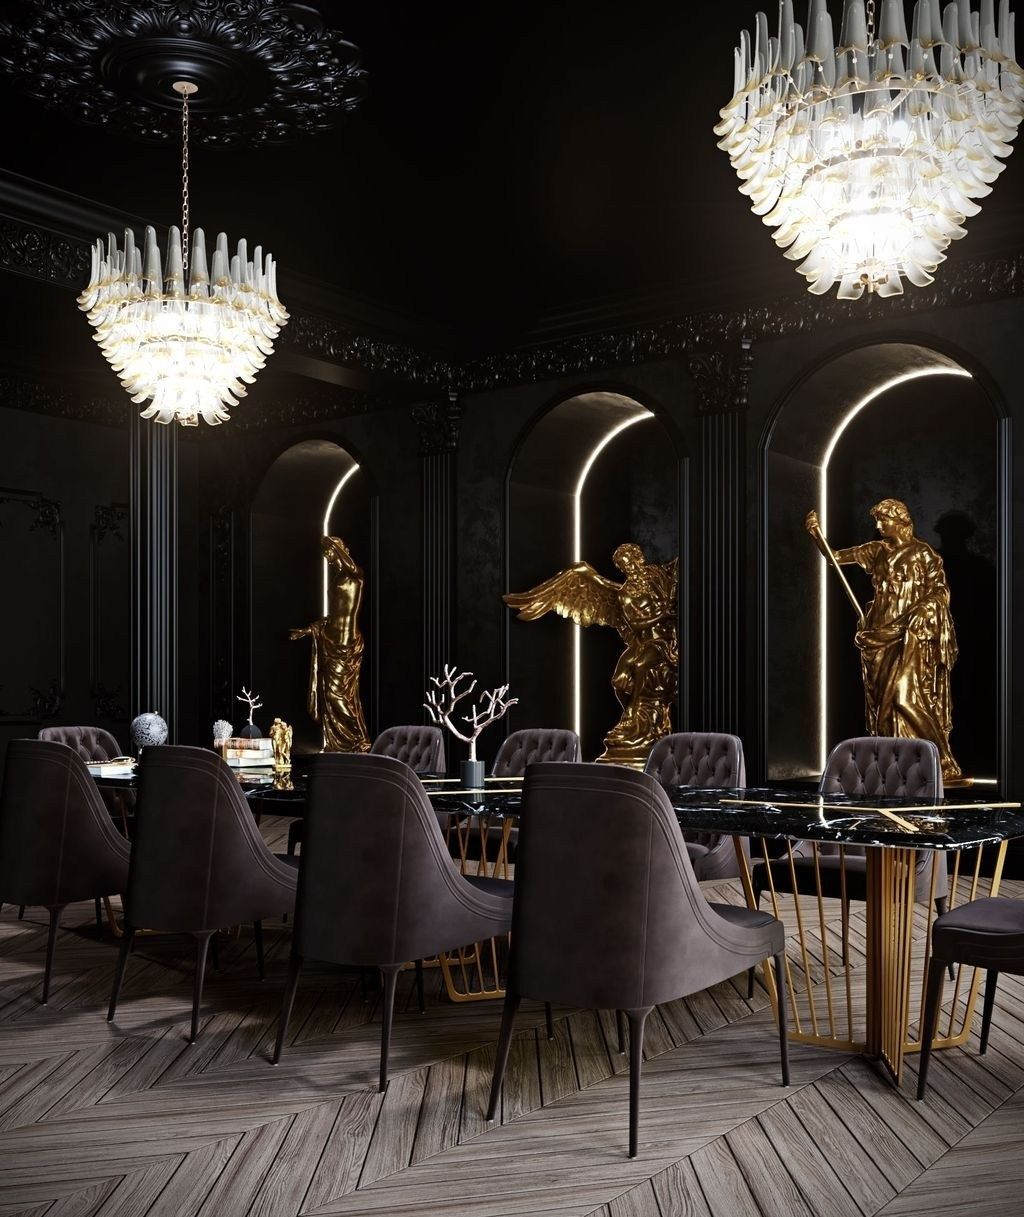 Casual Dining Rooms Decorating Ideas For A Soothing Interior: Casual Black And Gold Dining Room Design Ideas For